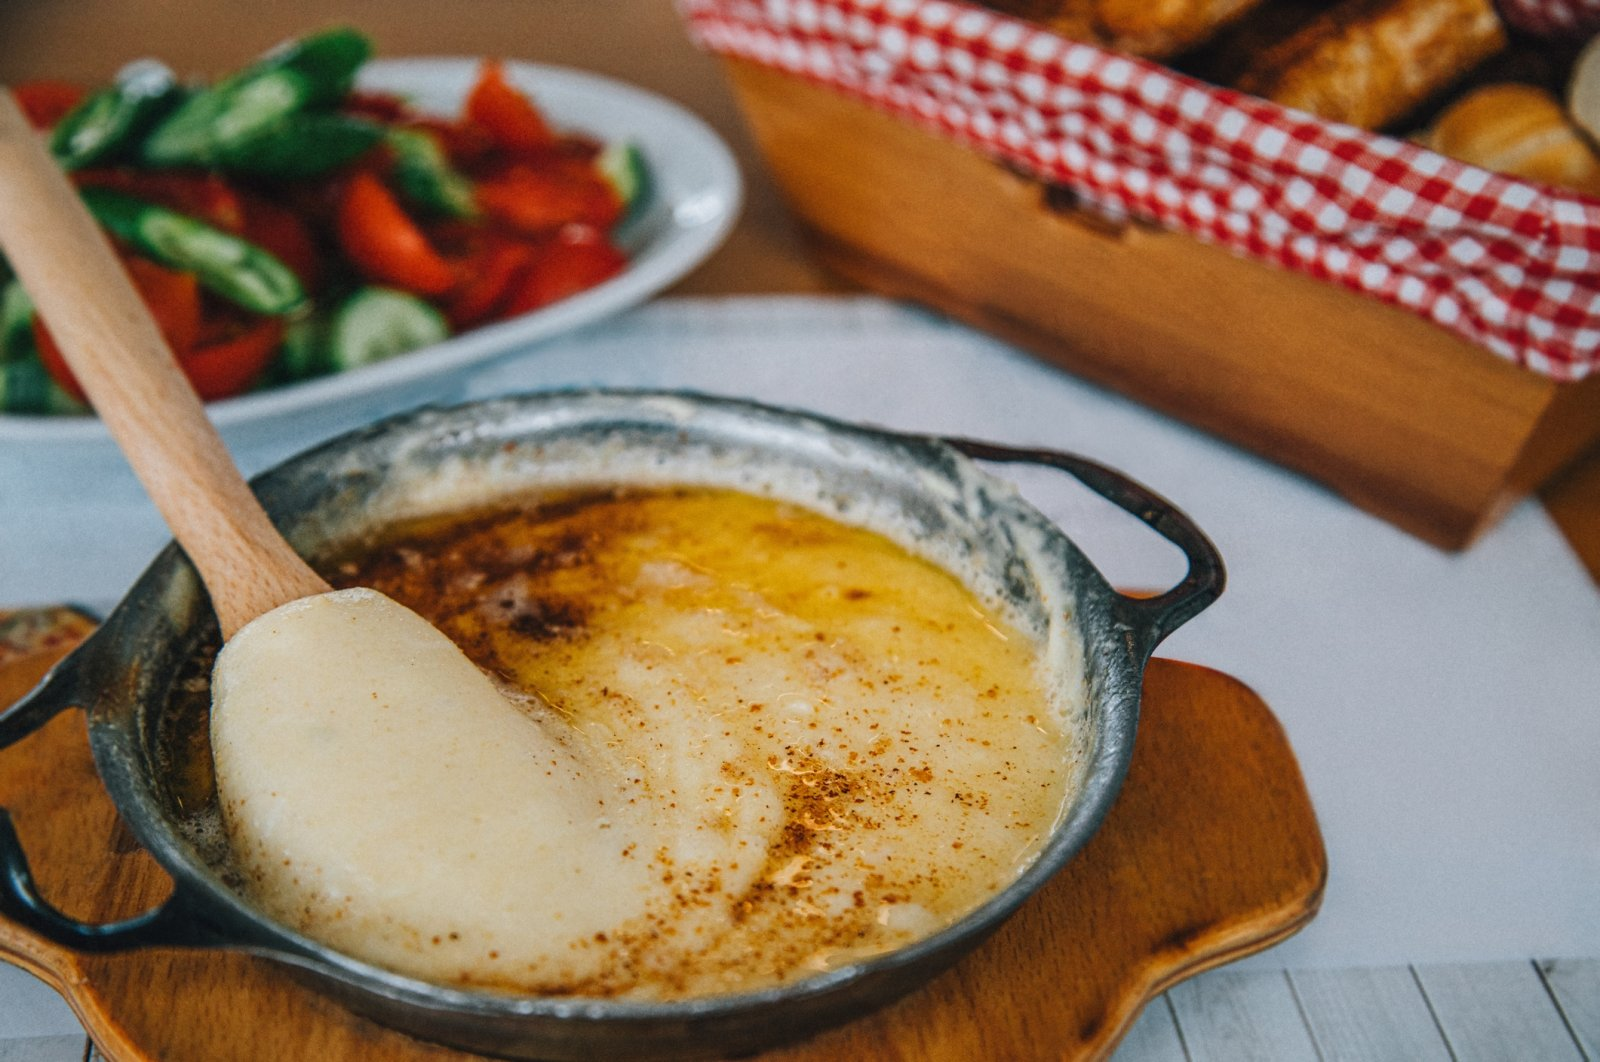 Black Sea folks consume corn in every way possible: on the cob, cracked, pulverized into flour or as cheesy fondue mixed with cornmeal among other ways. (iStock Photo)